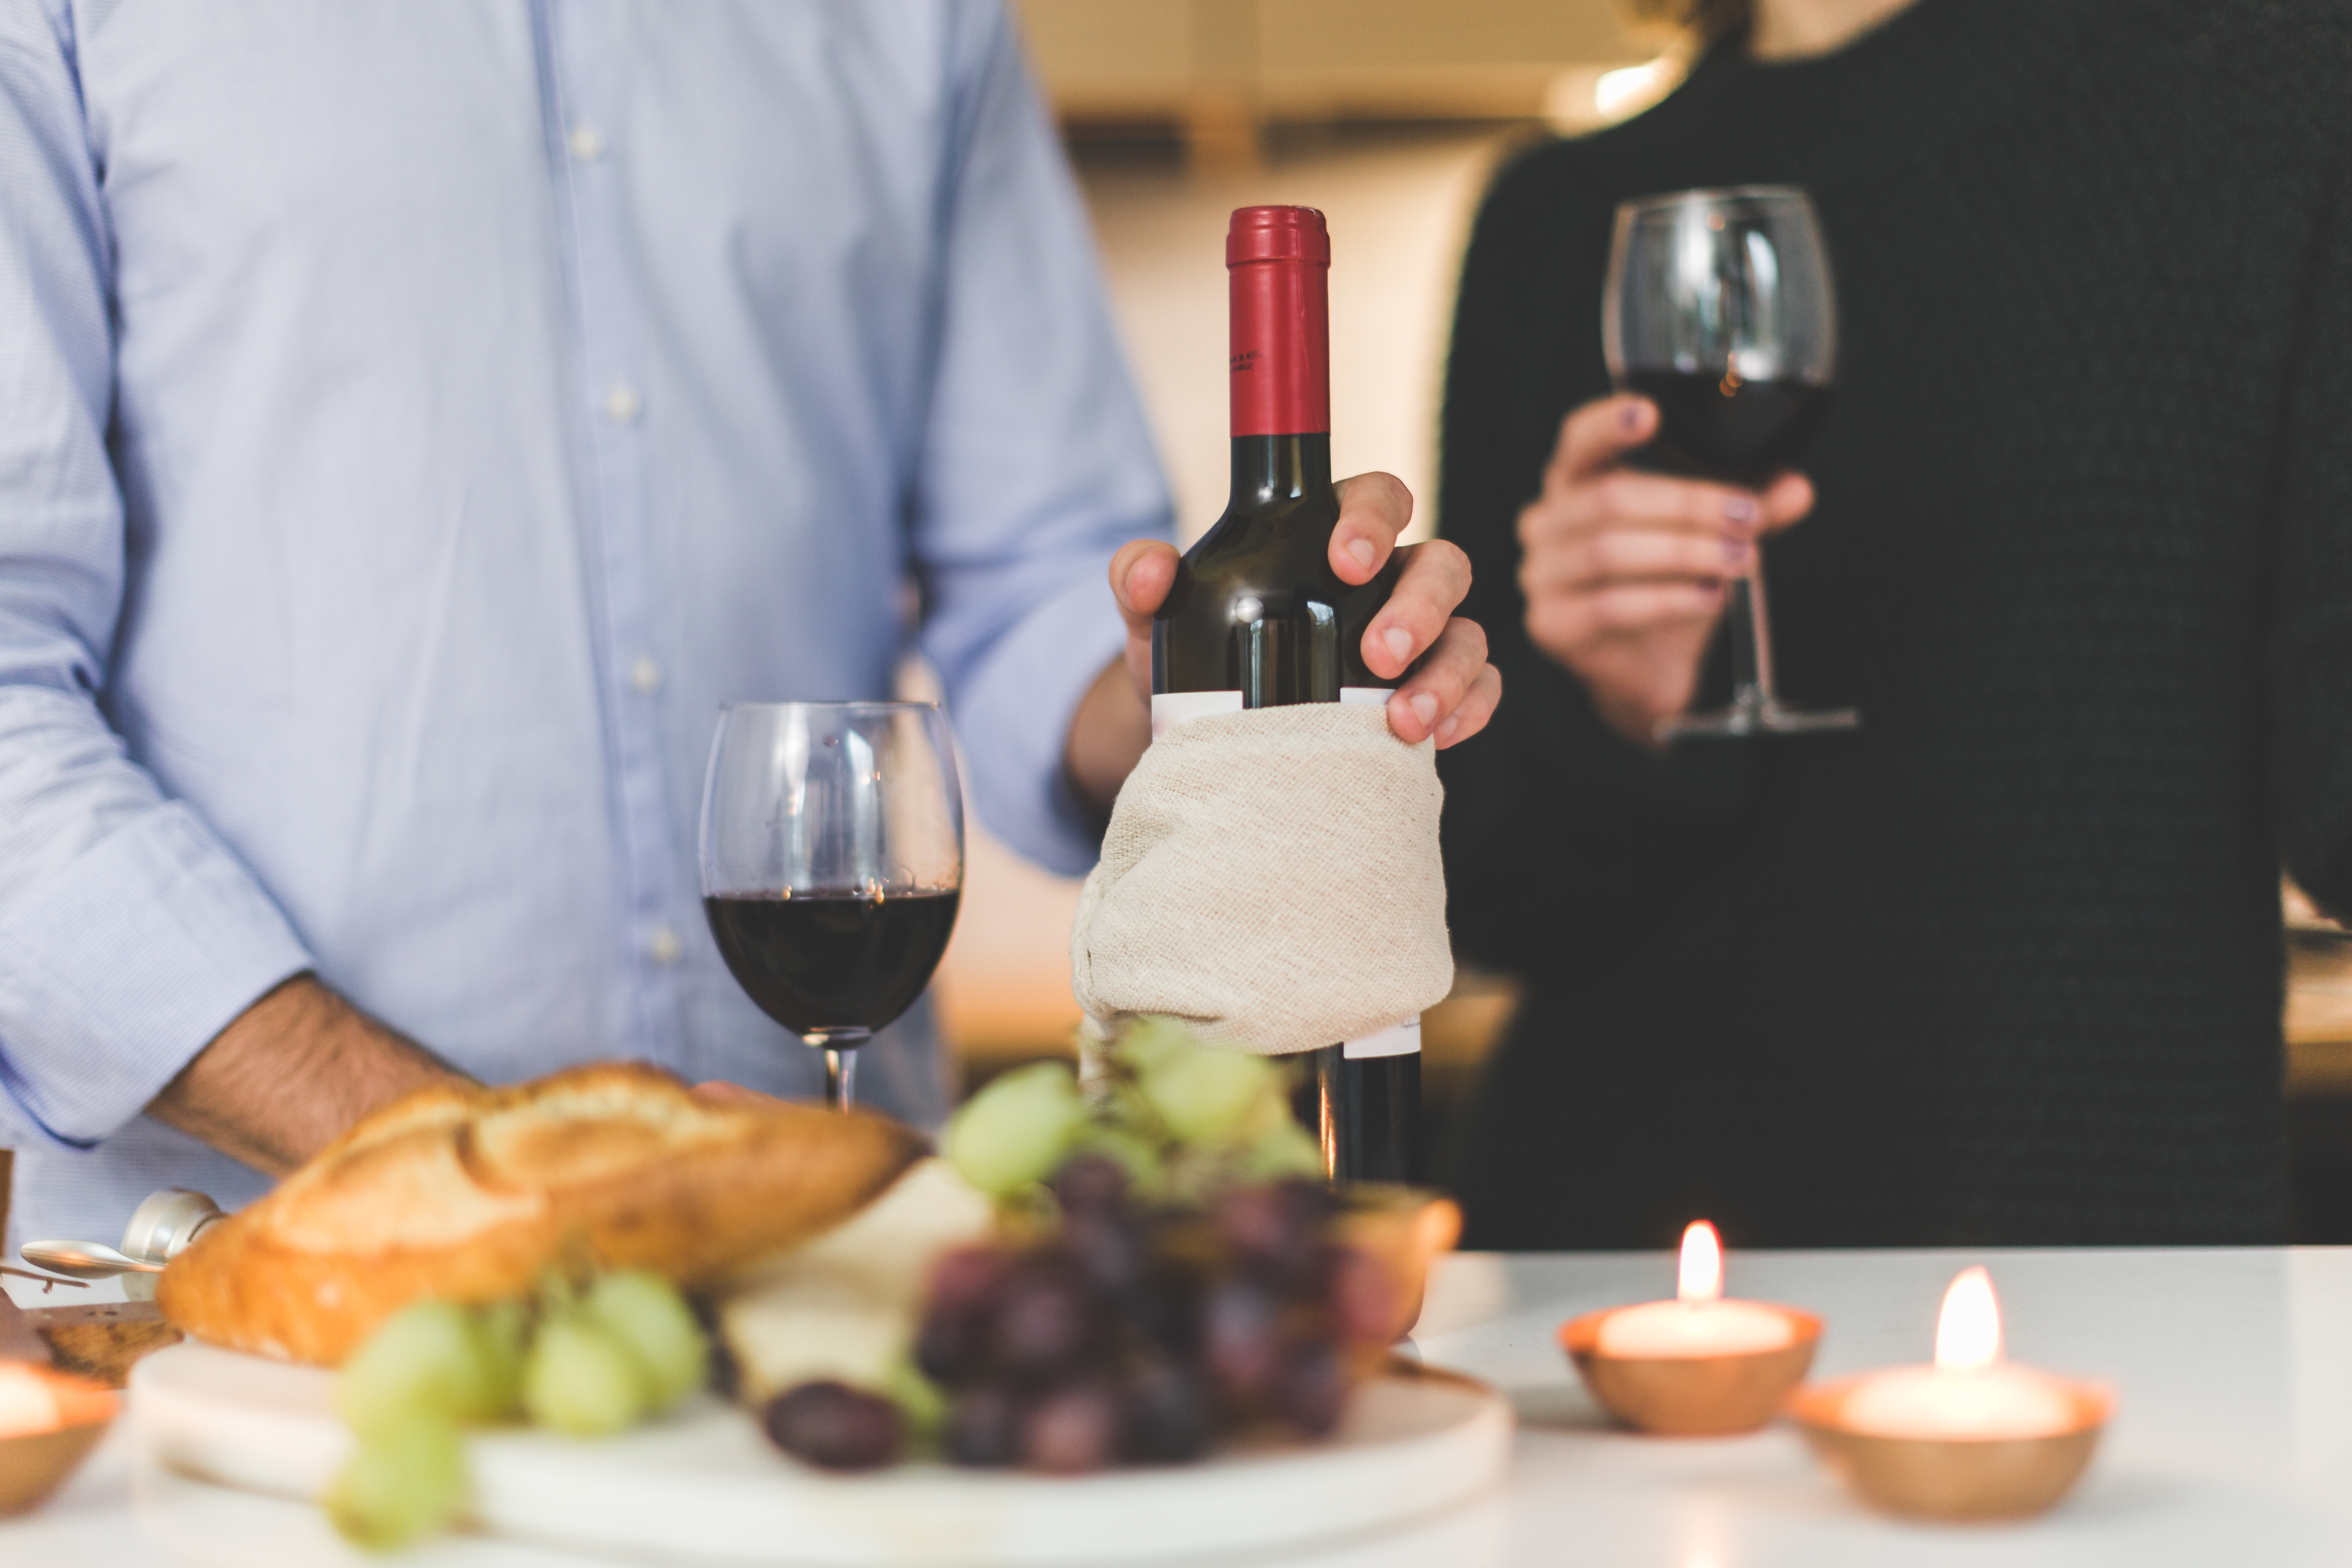 Person Holding Wine Bottle